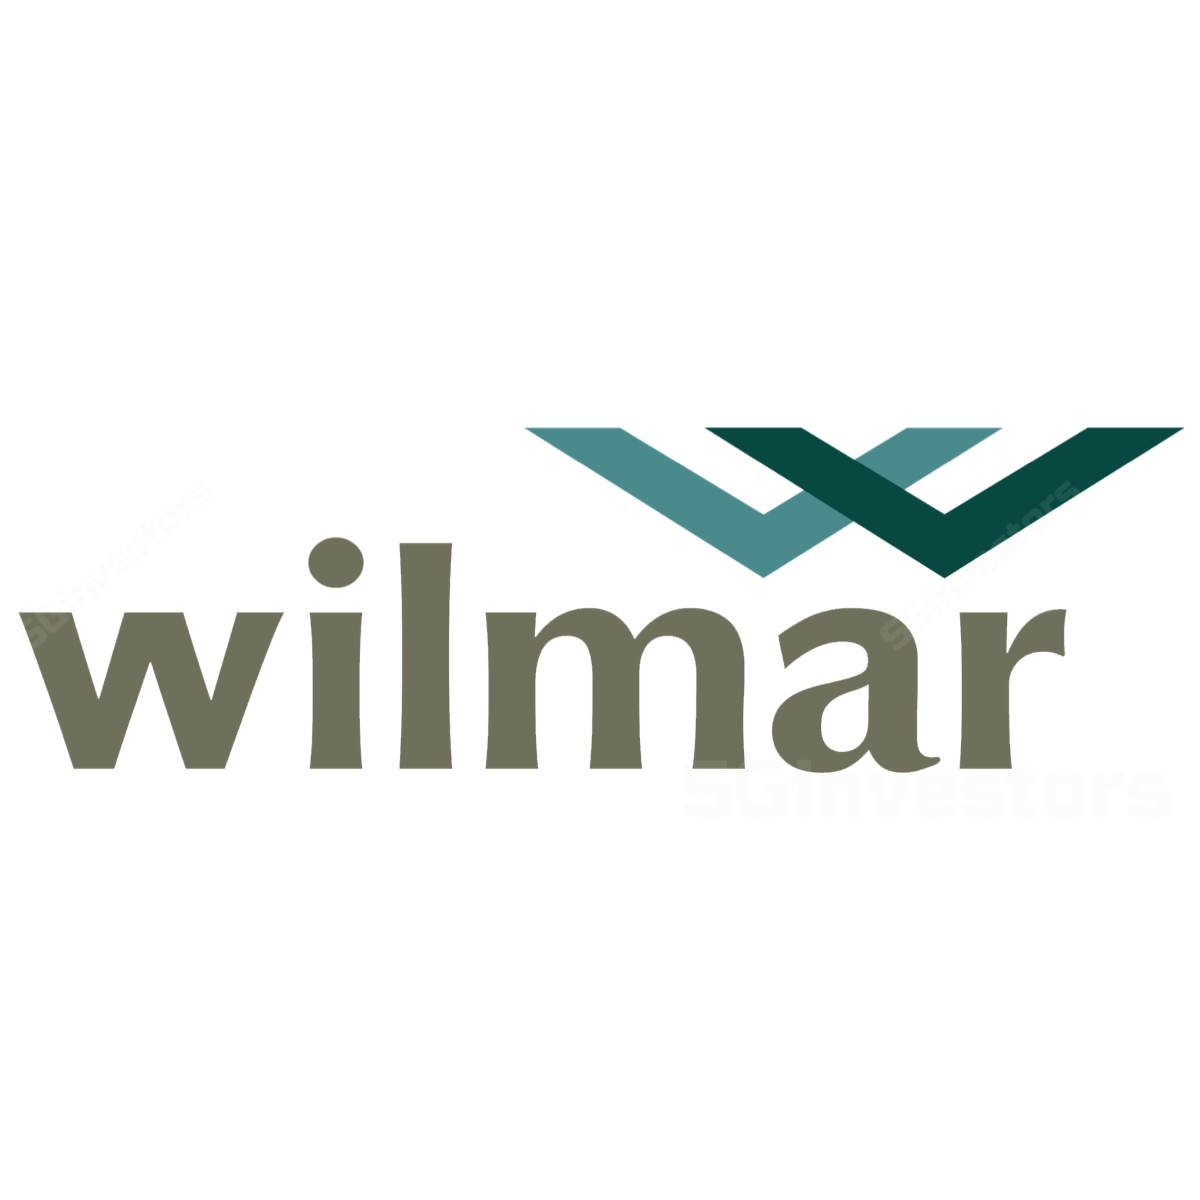 Wilmar International - DBS Vickers 2017-11-15: Await Steadier Close For The Year